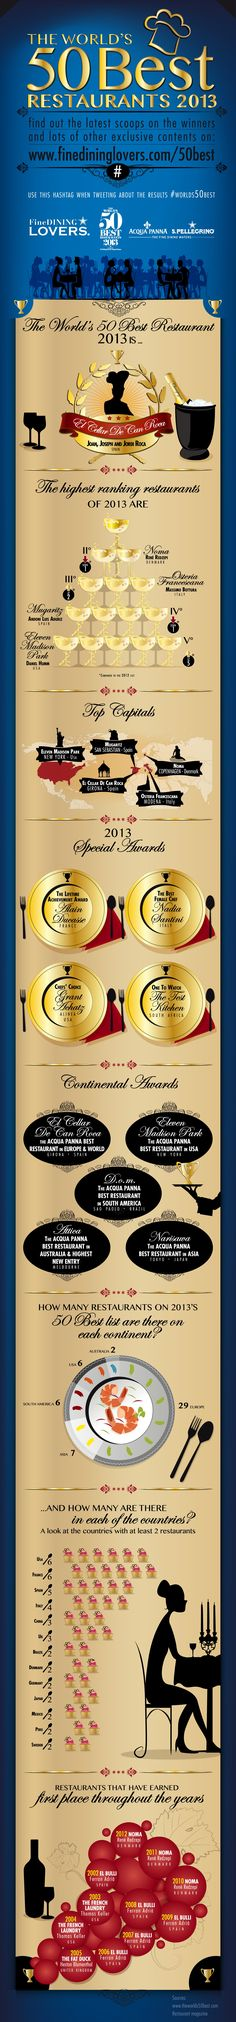 The Worlds #50BestRestaurants Awards 2013 - #Infographic - http://finedininglovers.com/blog/50-best-restaurants-news/the-worlds-50-best-restaurants-2013-infographic/